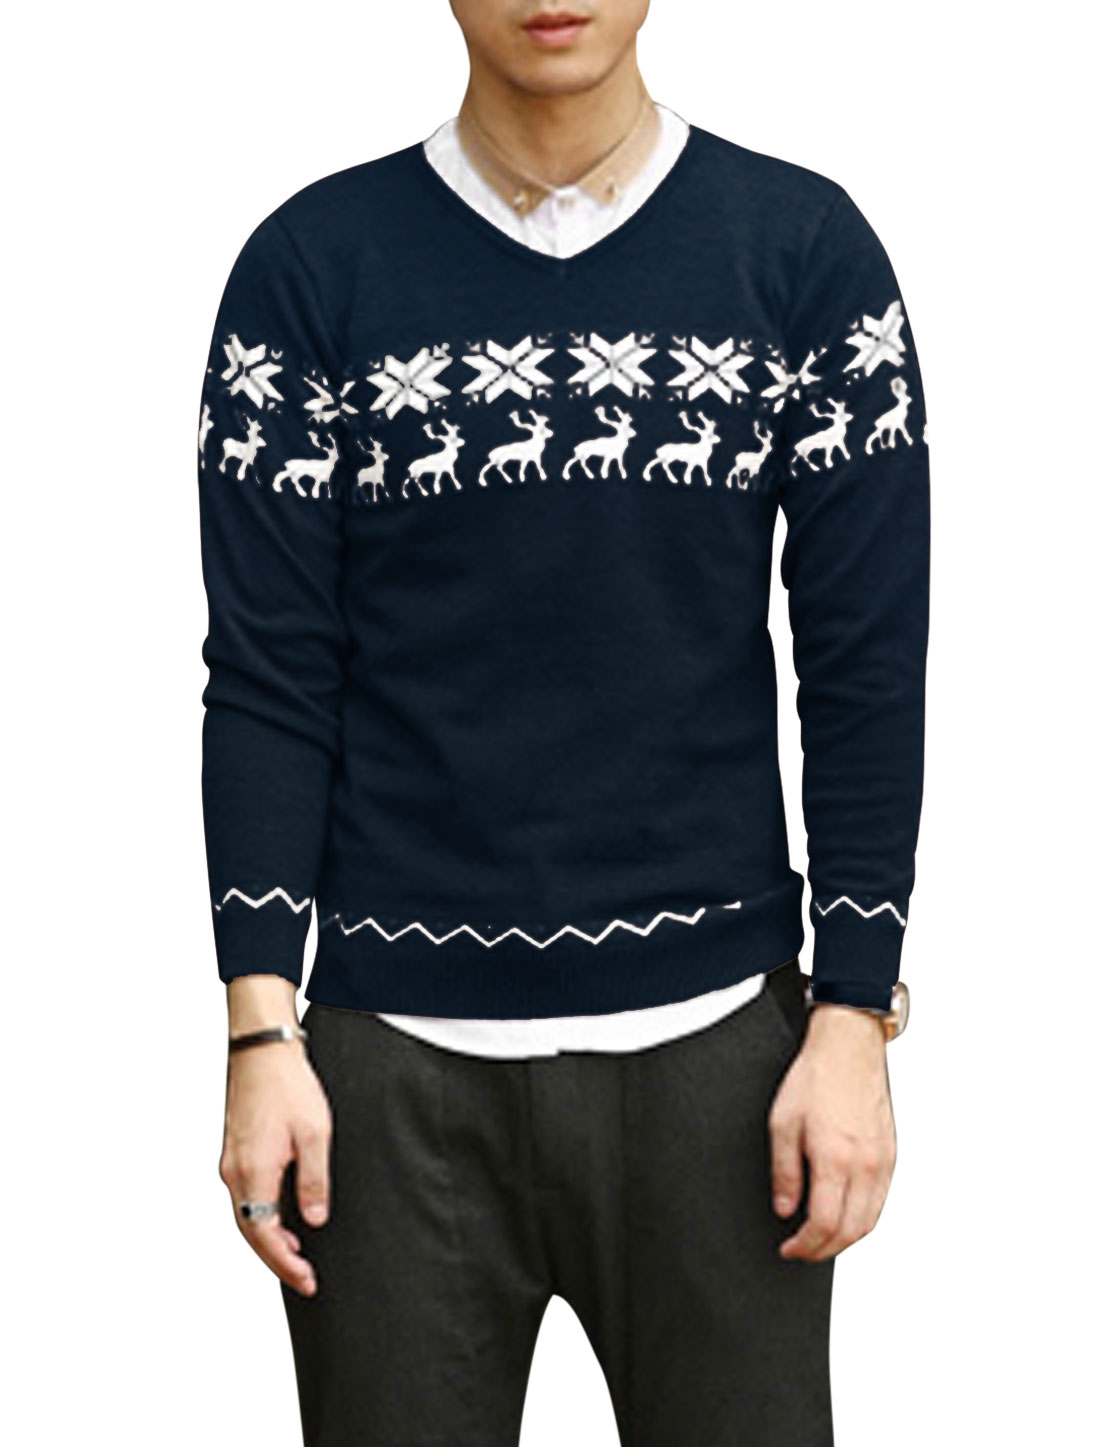 V Neck Deer Pattern Snowflake Pattern Casual Sweater for Men Navy Blue M